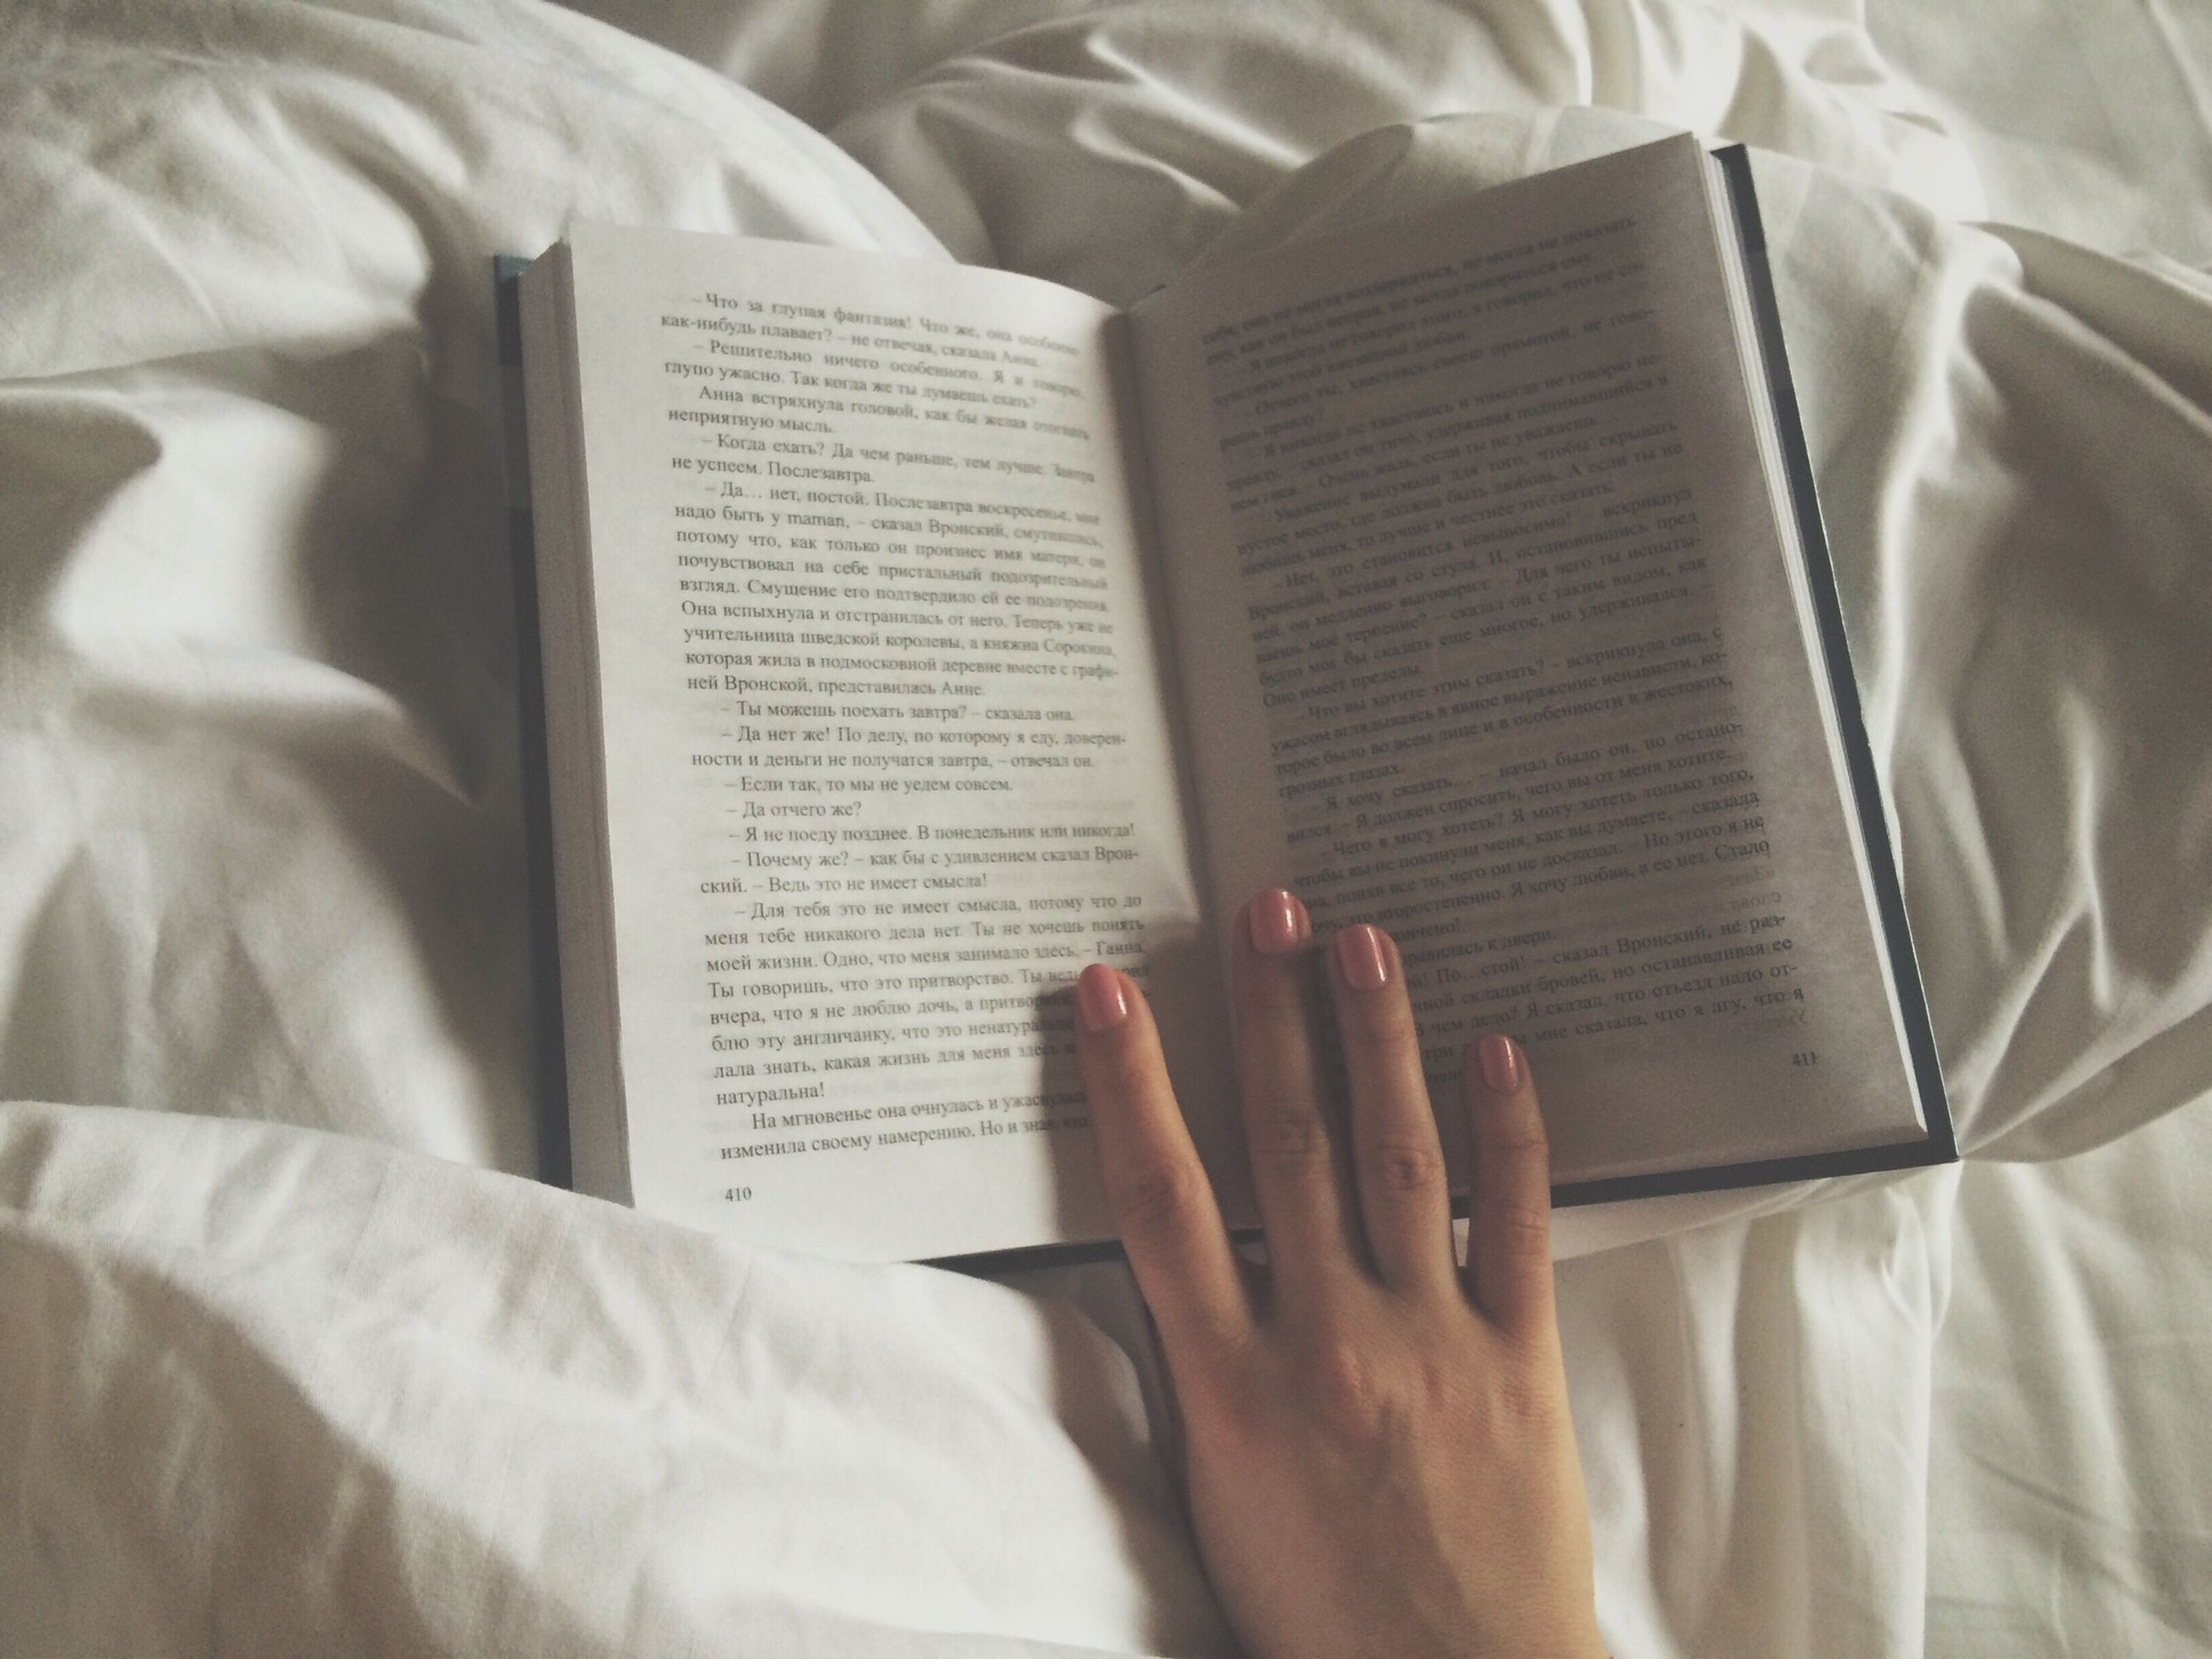 indoors, person, holding, part of, book, communication, human finger, lifestyles, cropped, text, midsection, men, education, paper, bed, unrecognizable person